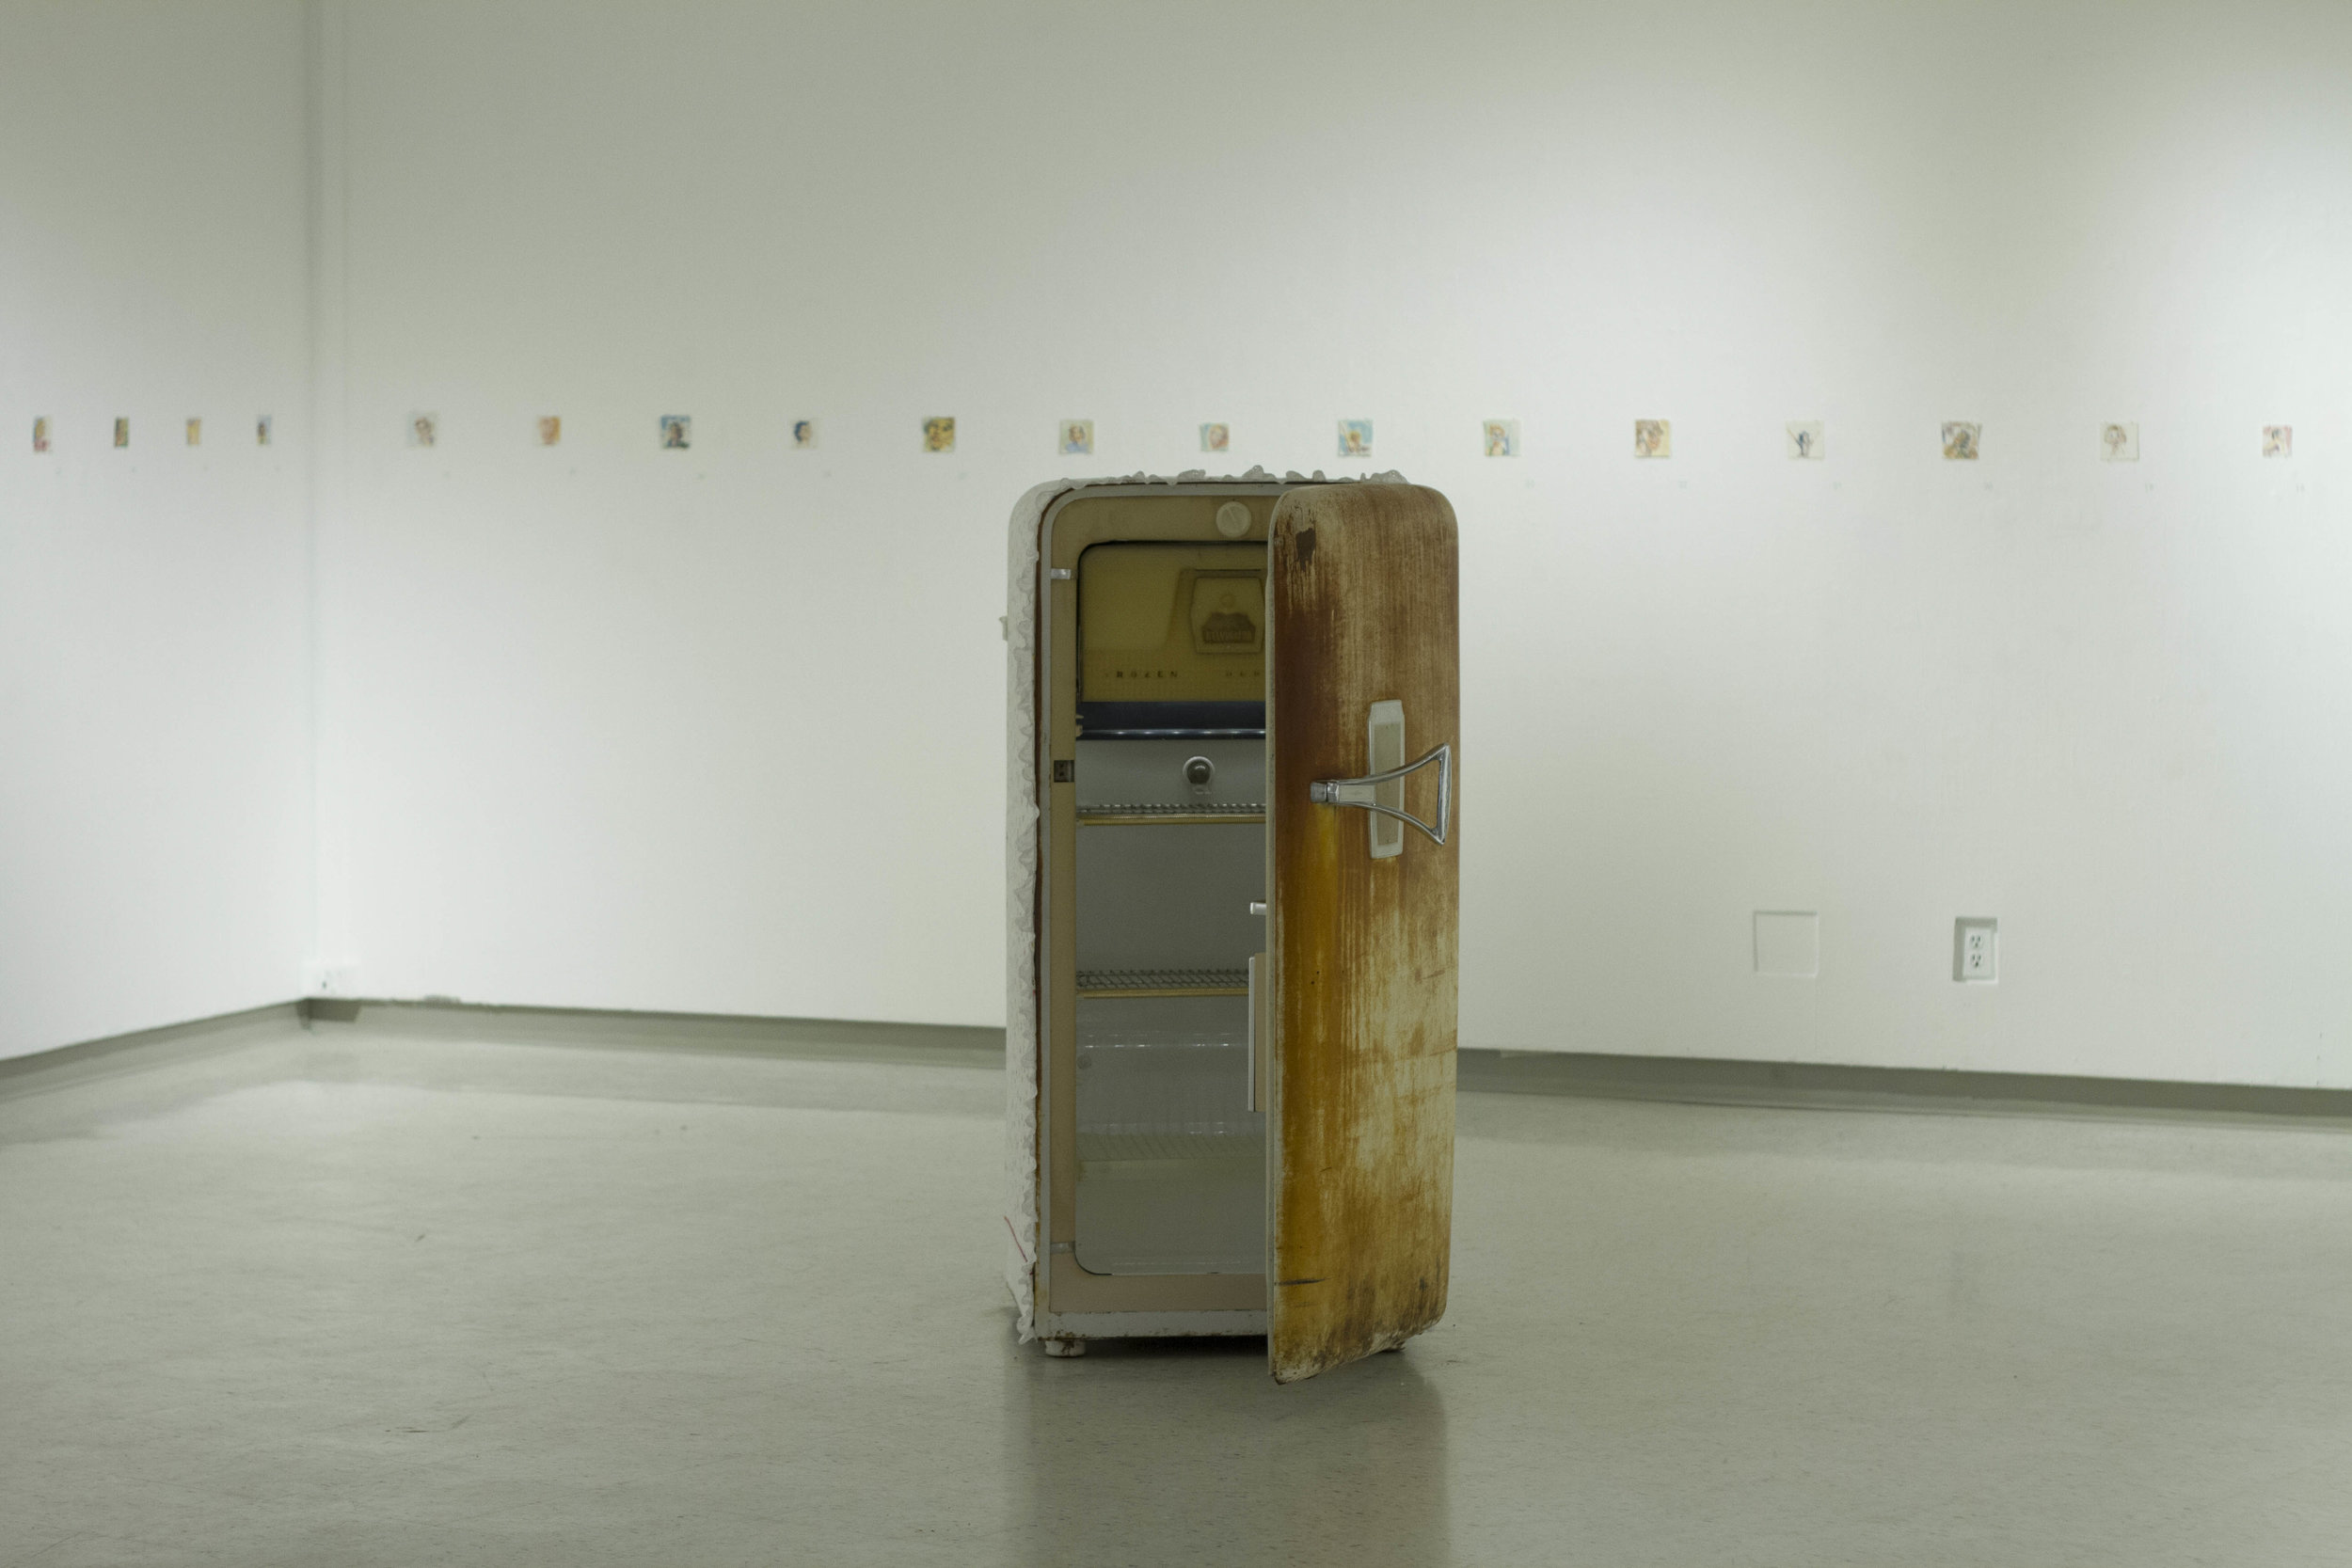 There's something I need to get off of my chest… - bed sheet, ruffle, Kelvinator Refrigerator, LED light, 3x5'Gordon Snelgrove Gallery, 2015